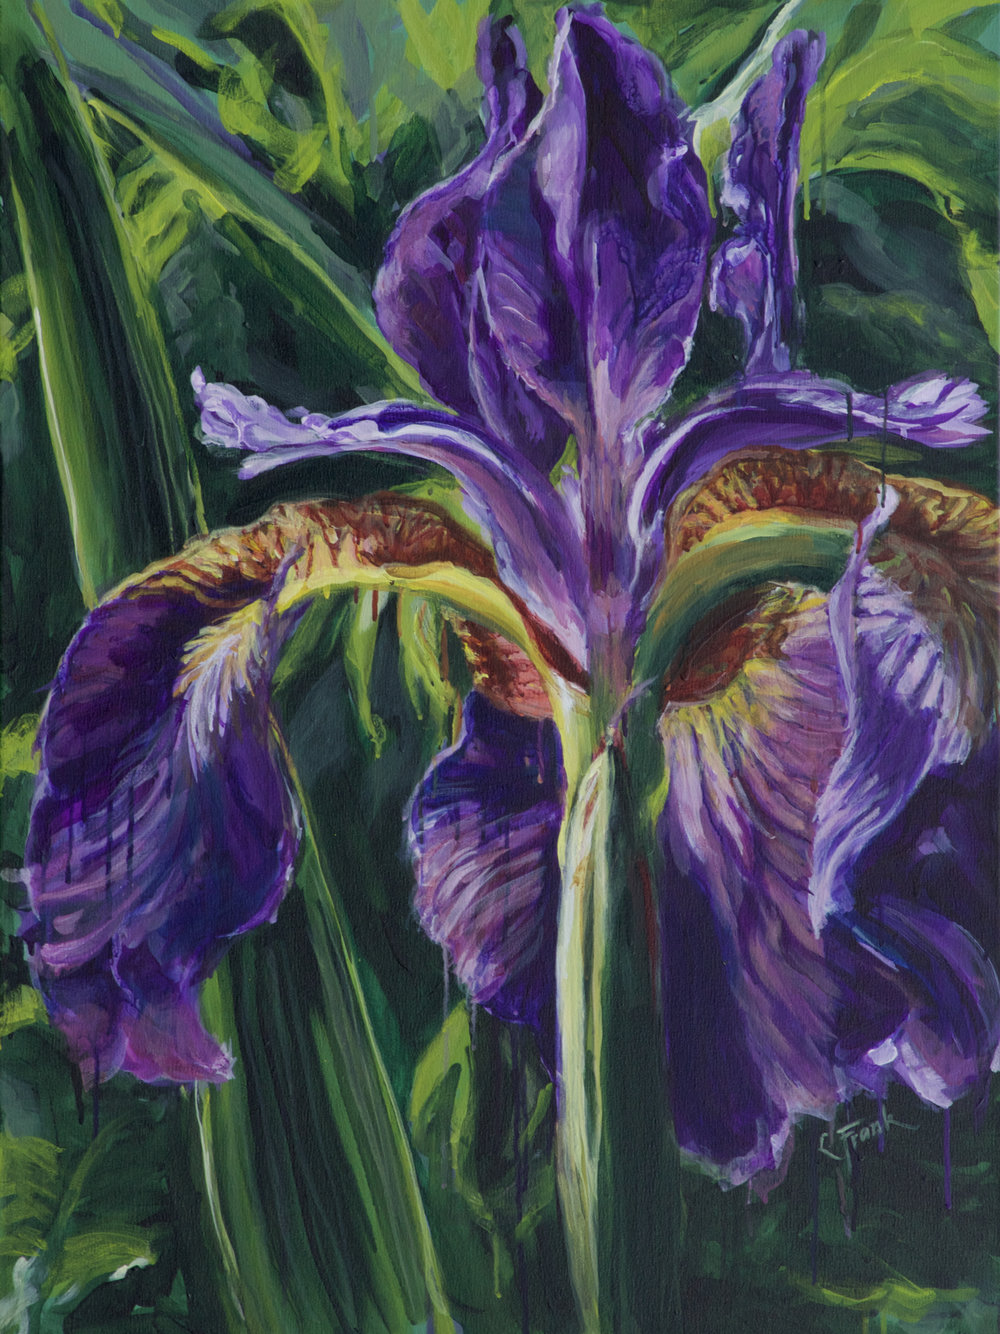 June 2018 - Leona's Purple Iris, Weir Farm, is accepted to New Haven Paint & Clay's 117th Annual Open Exhibition at Creative Arts Workshop in New Haven.